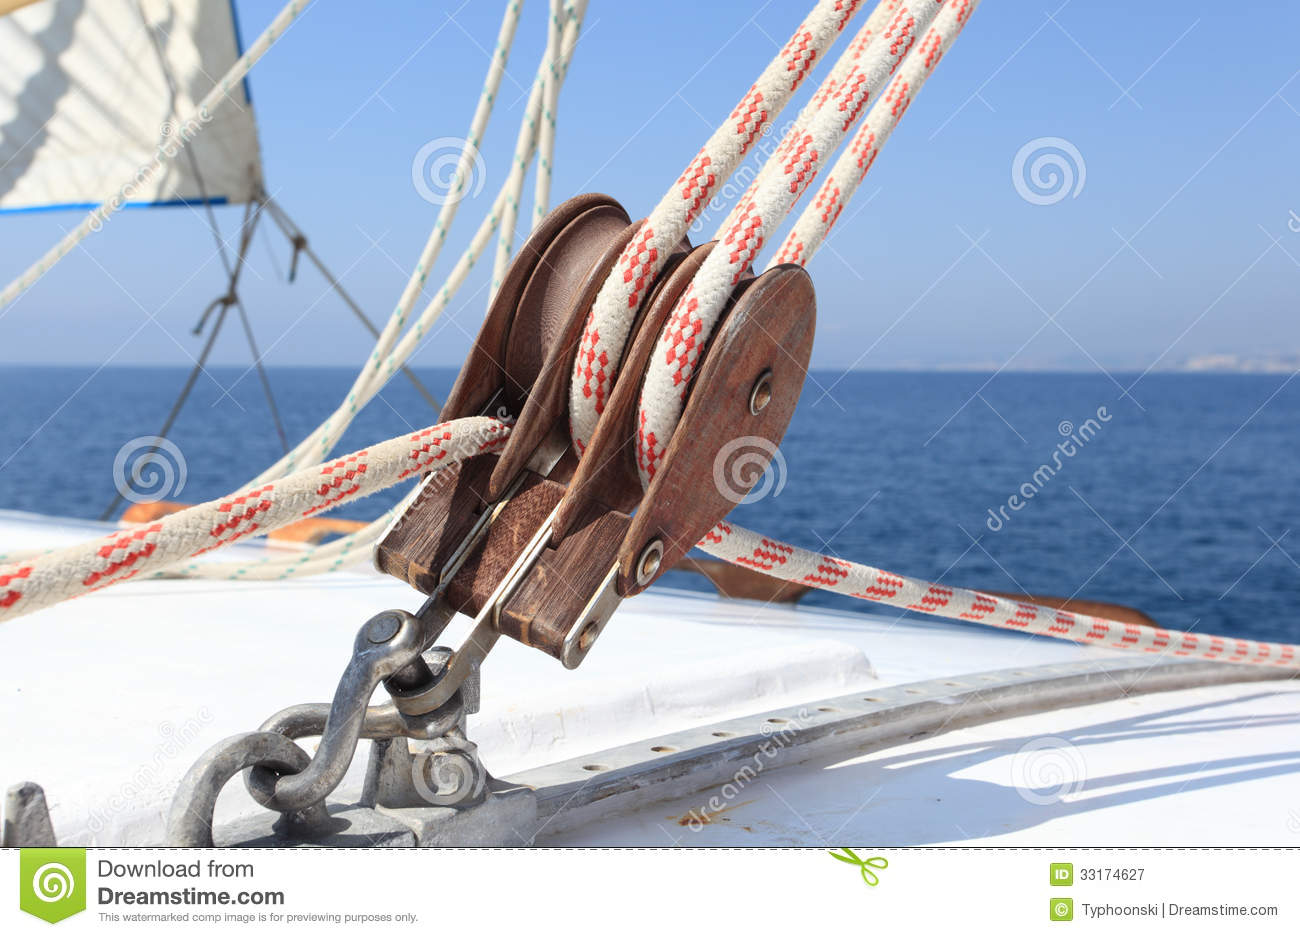 Sailboat winch stock image. Image of white, rope, coiled - 33174627